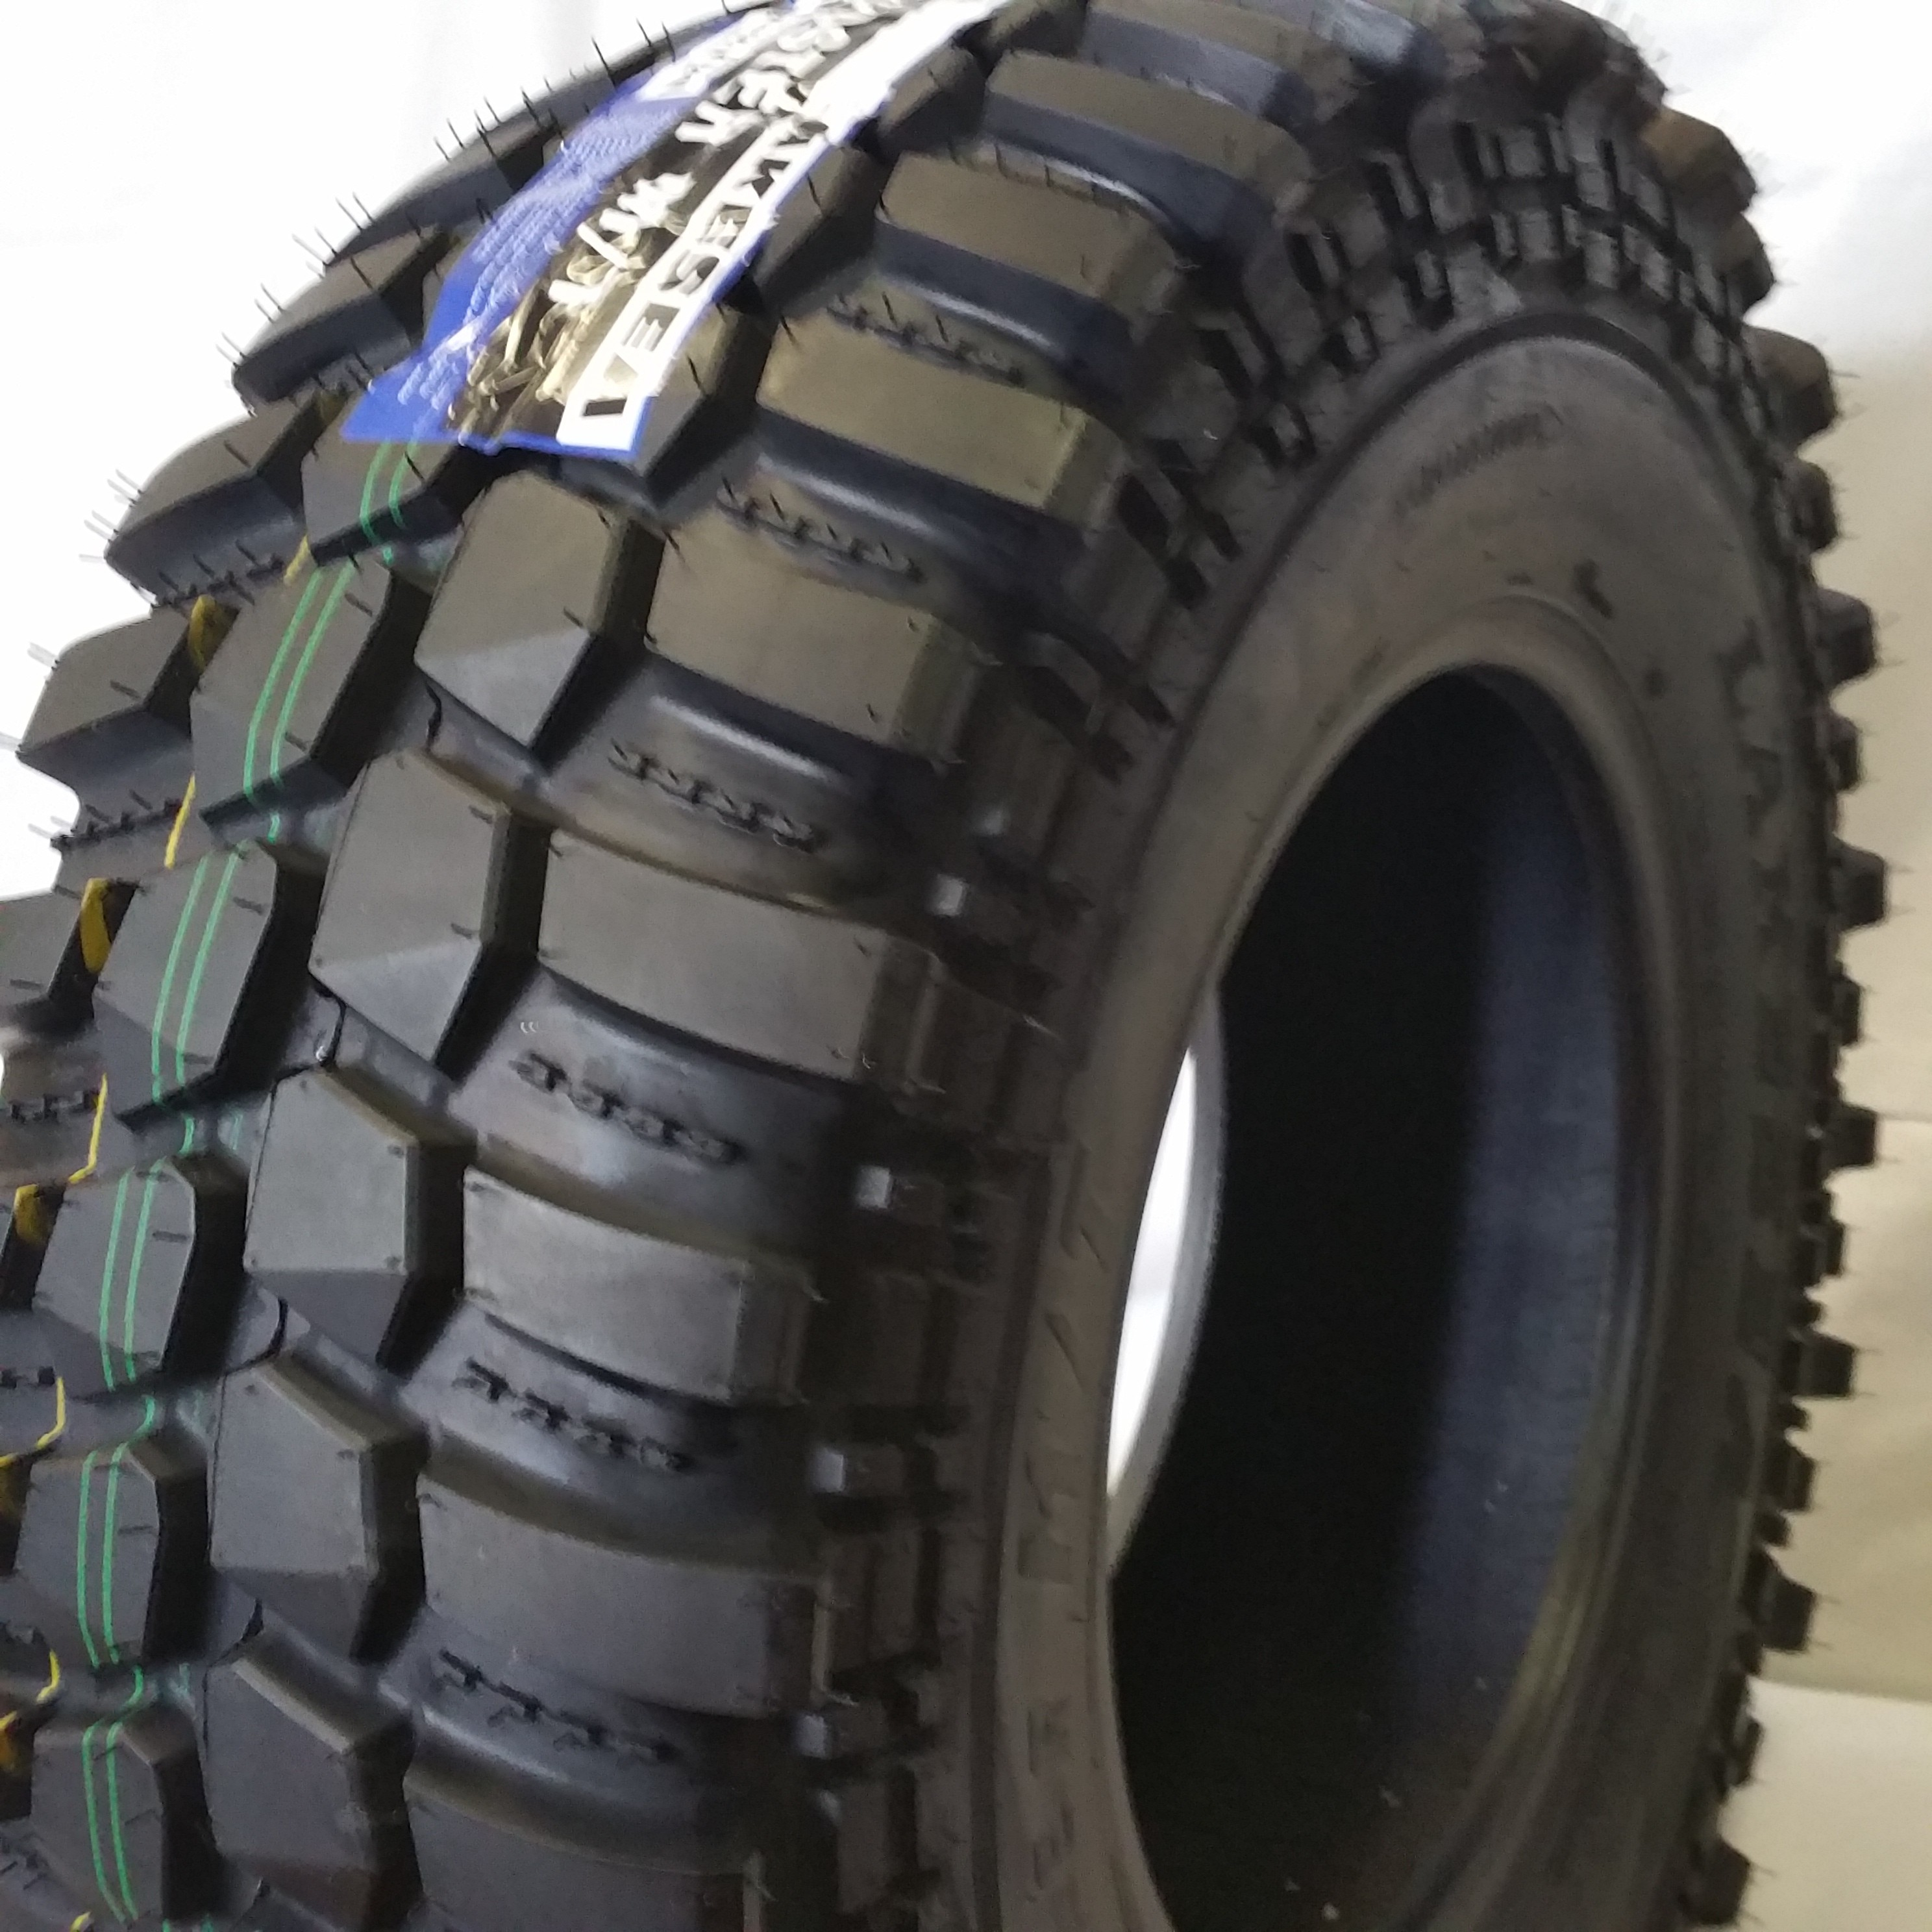 LT 31x10.50R15 Mud - Truck Tires - Tires for SUV and ...